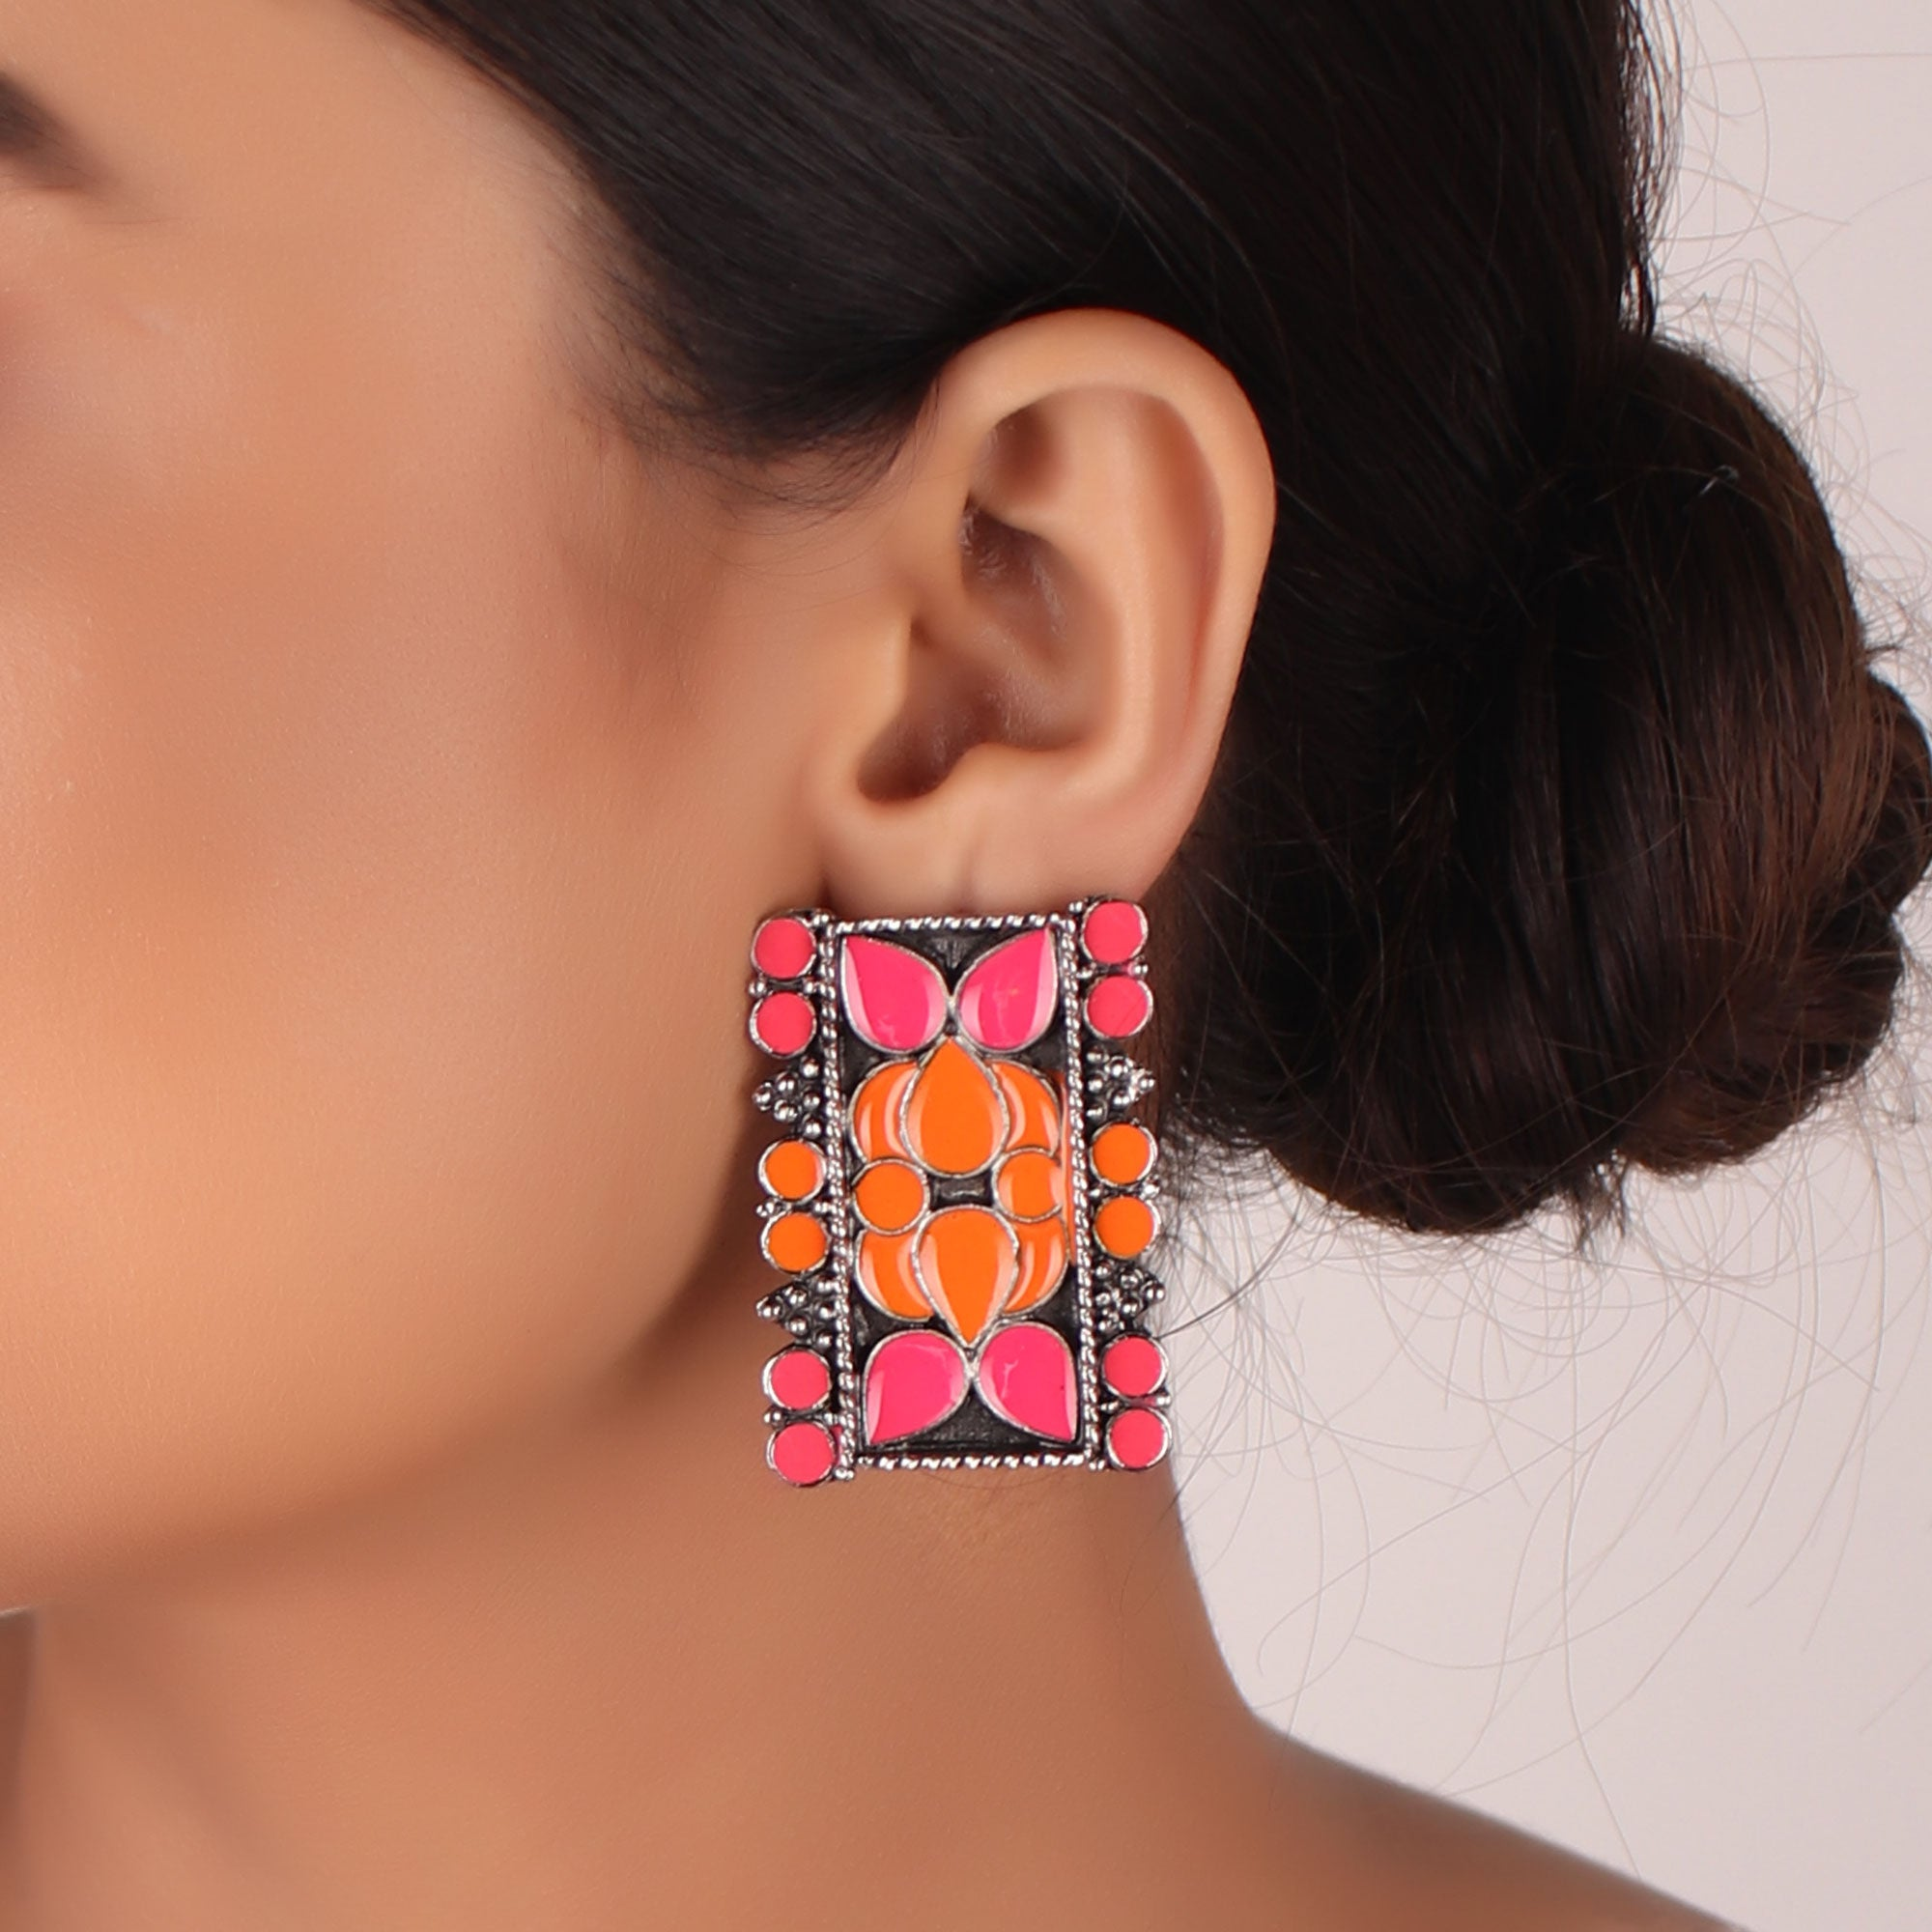 The Rectangular Prism Earrings in Pink & Orange